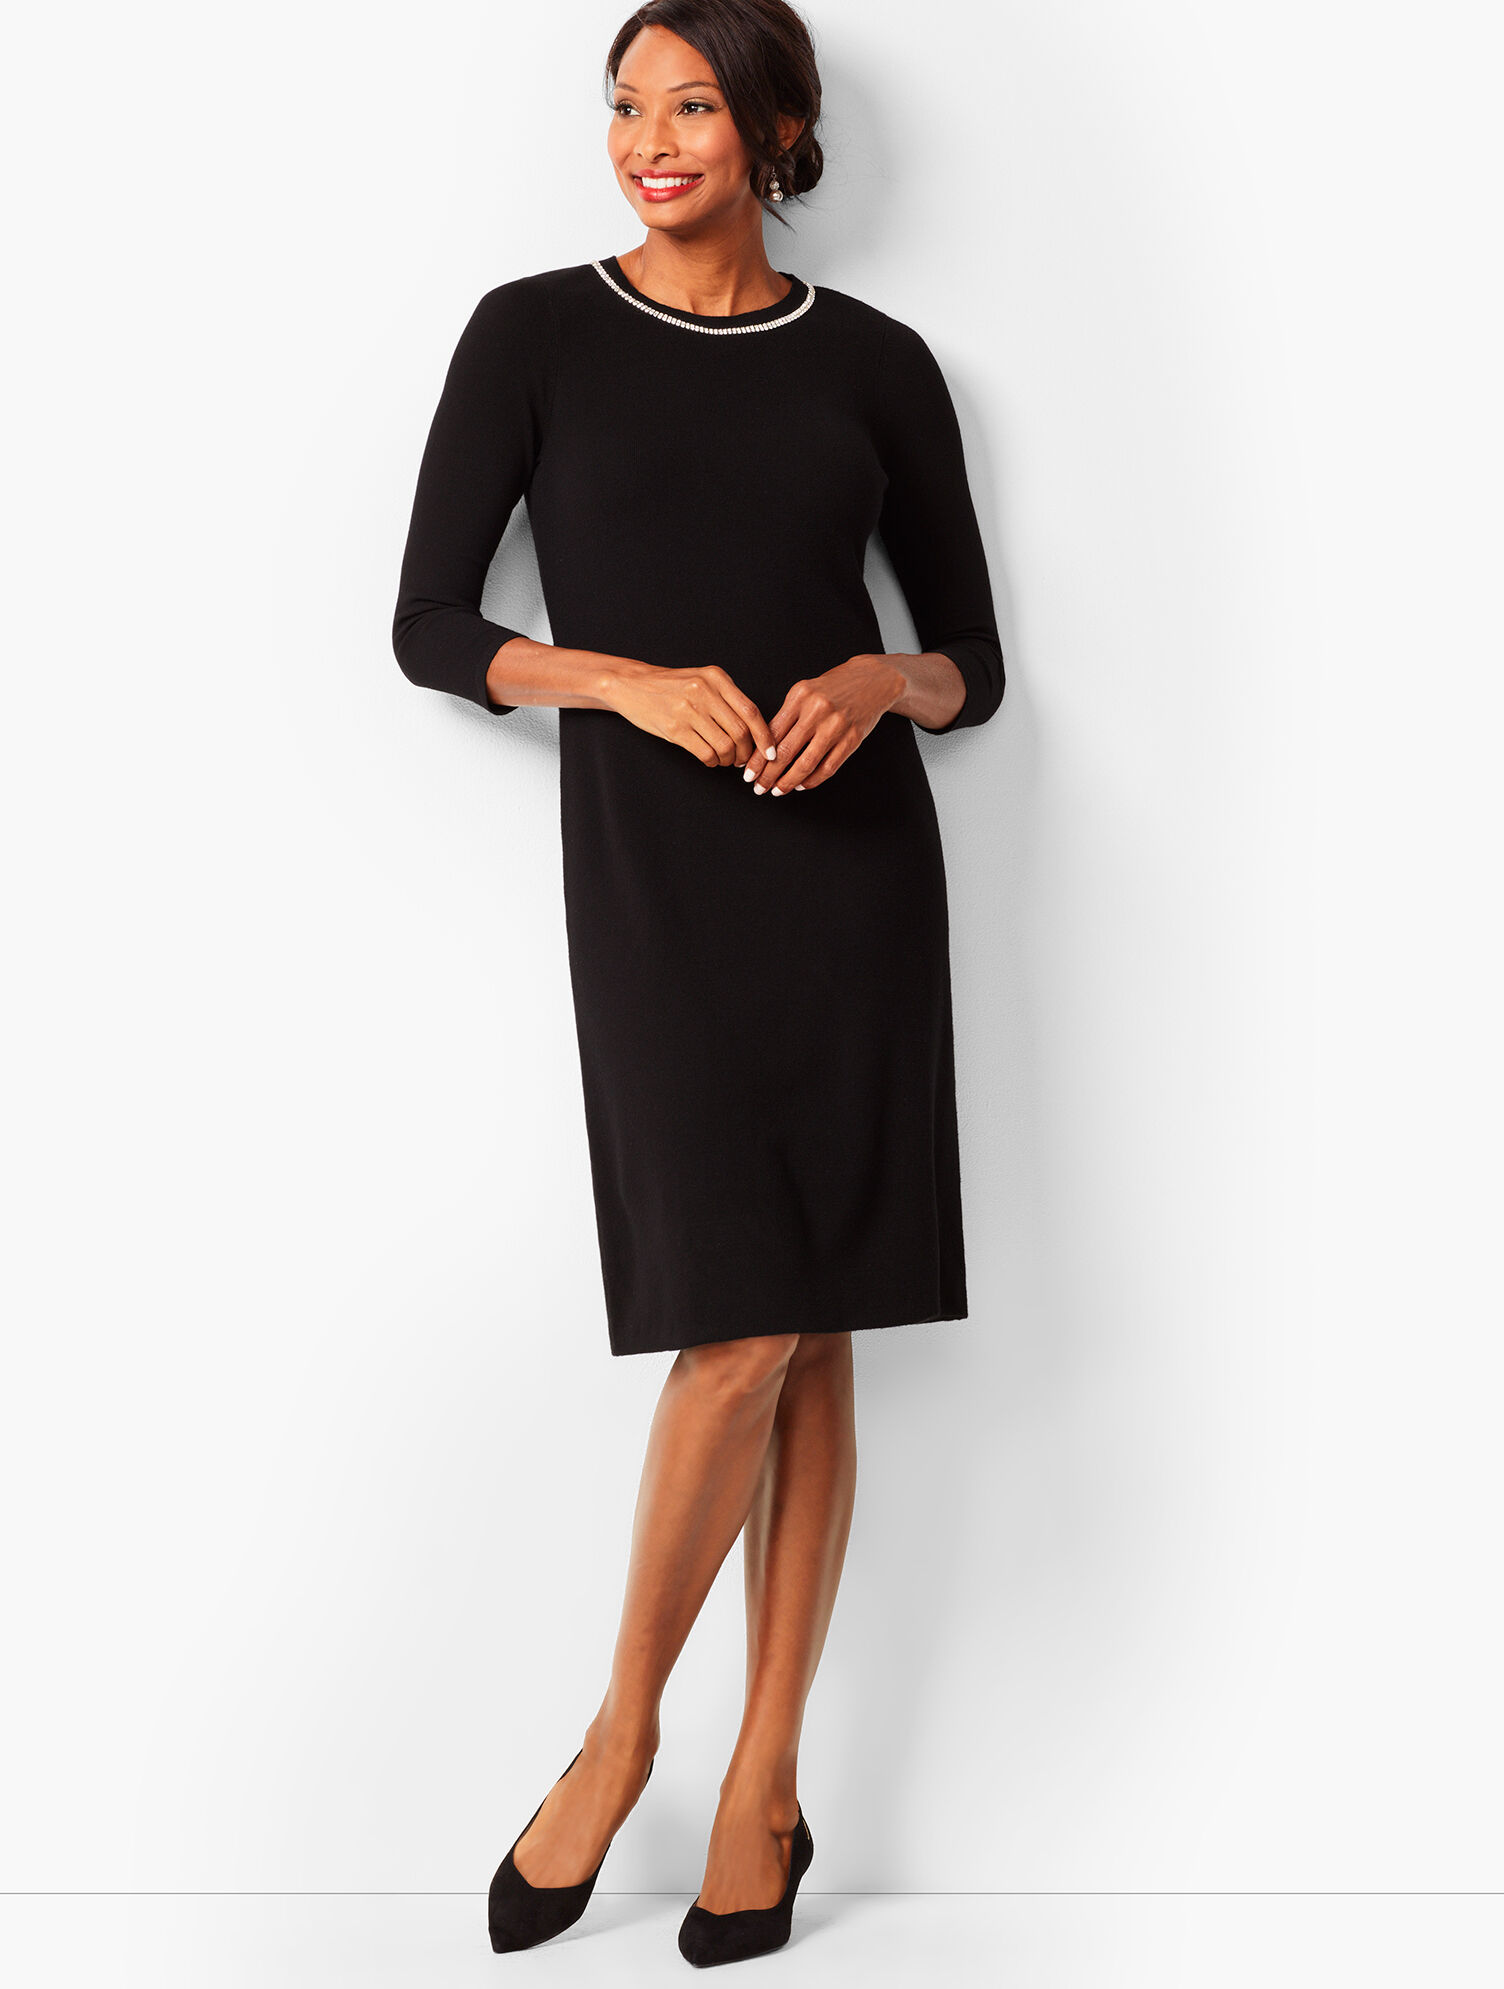 Talbots Holiday Dresses